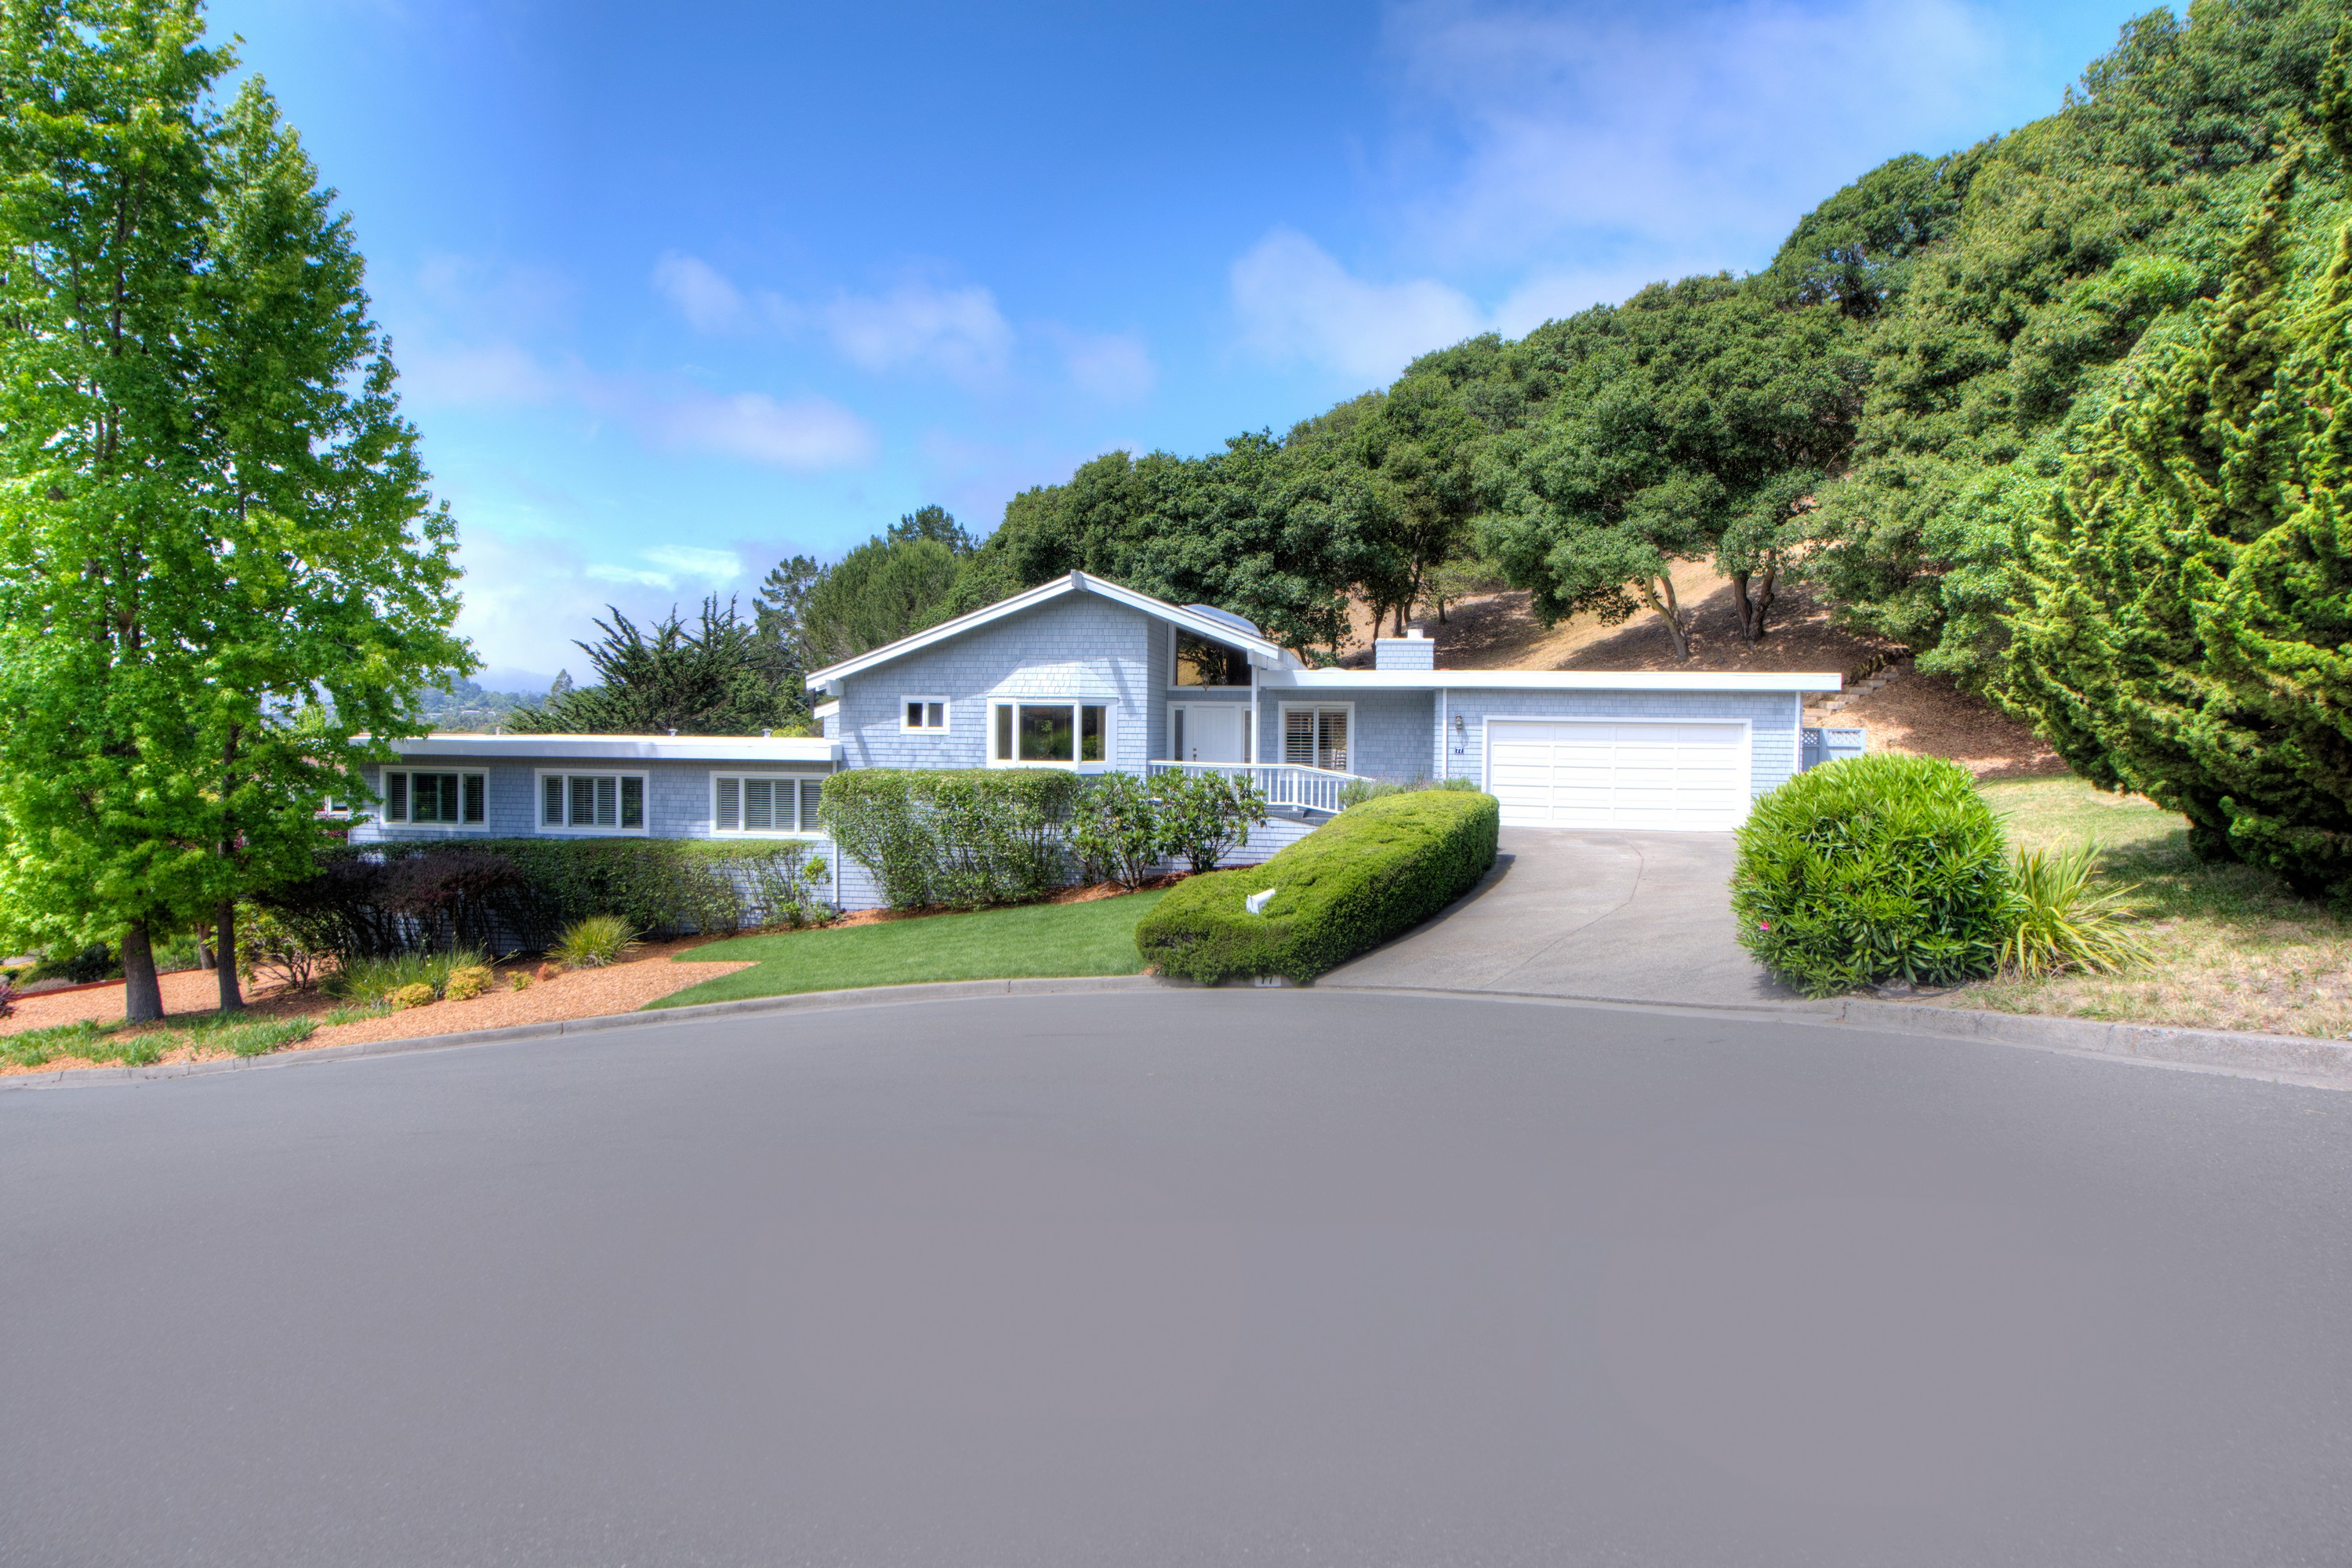 Single Family Home for Sale at Updated Tiburon Family Home 77 Paseo Mirasol Tiburon, California, 94920 United States